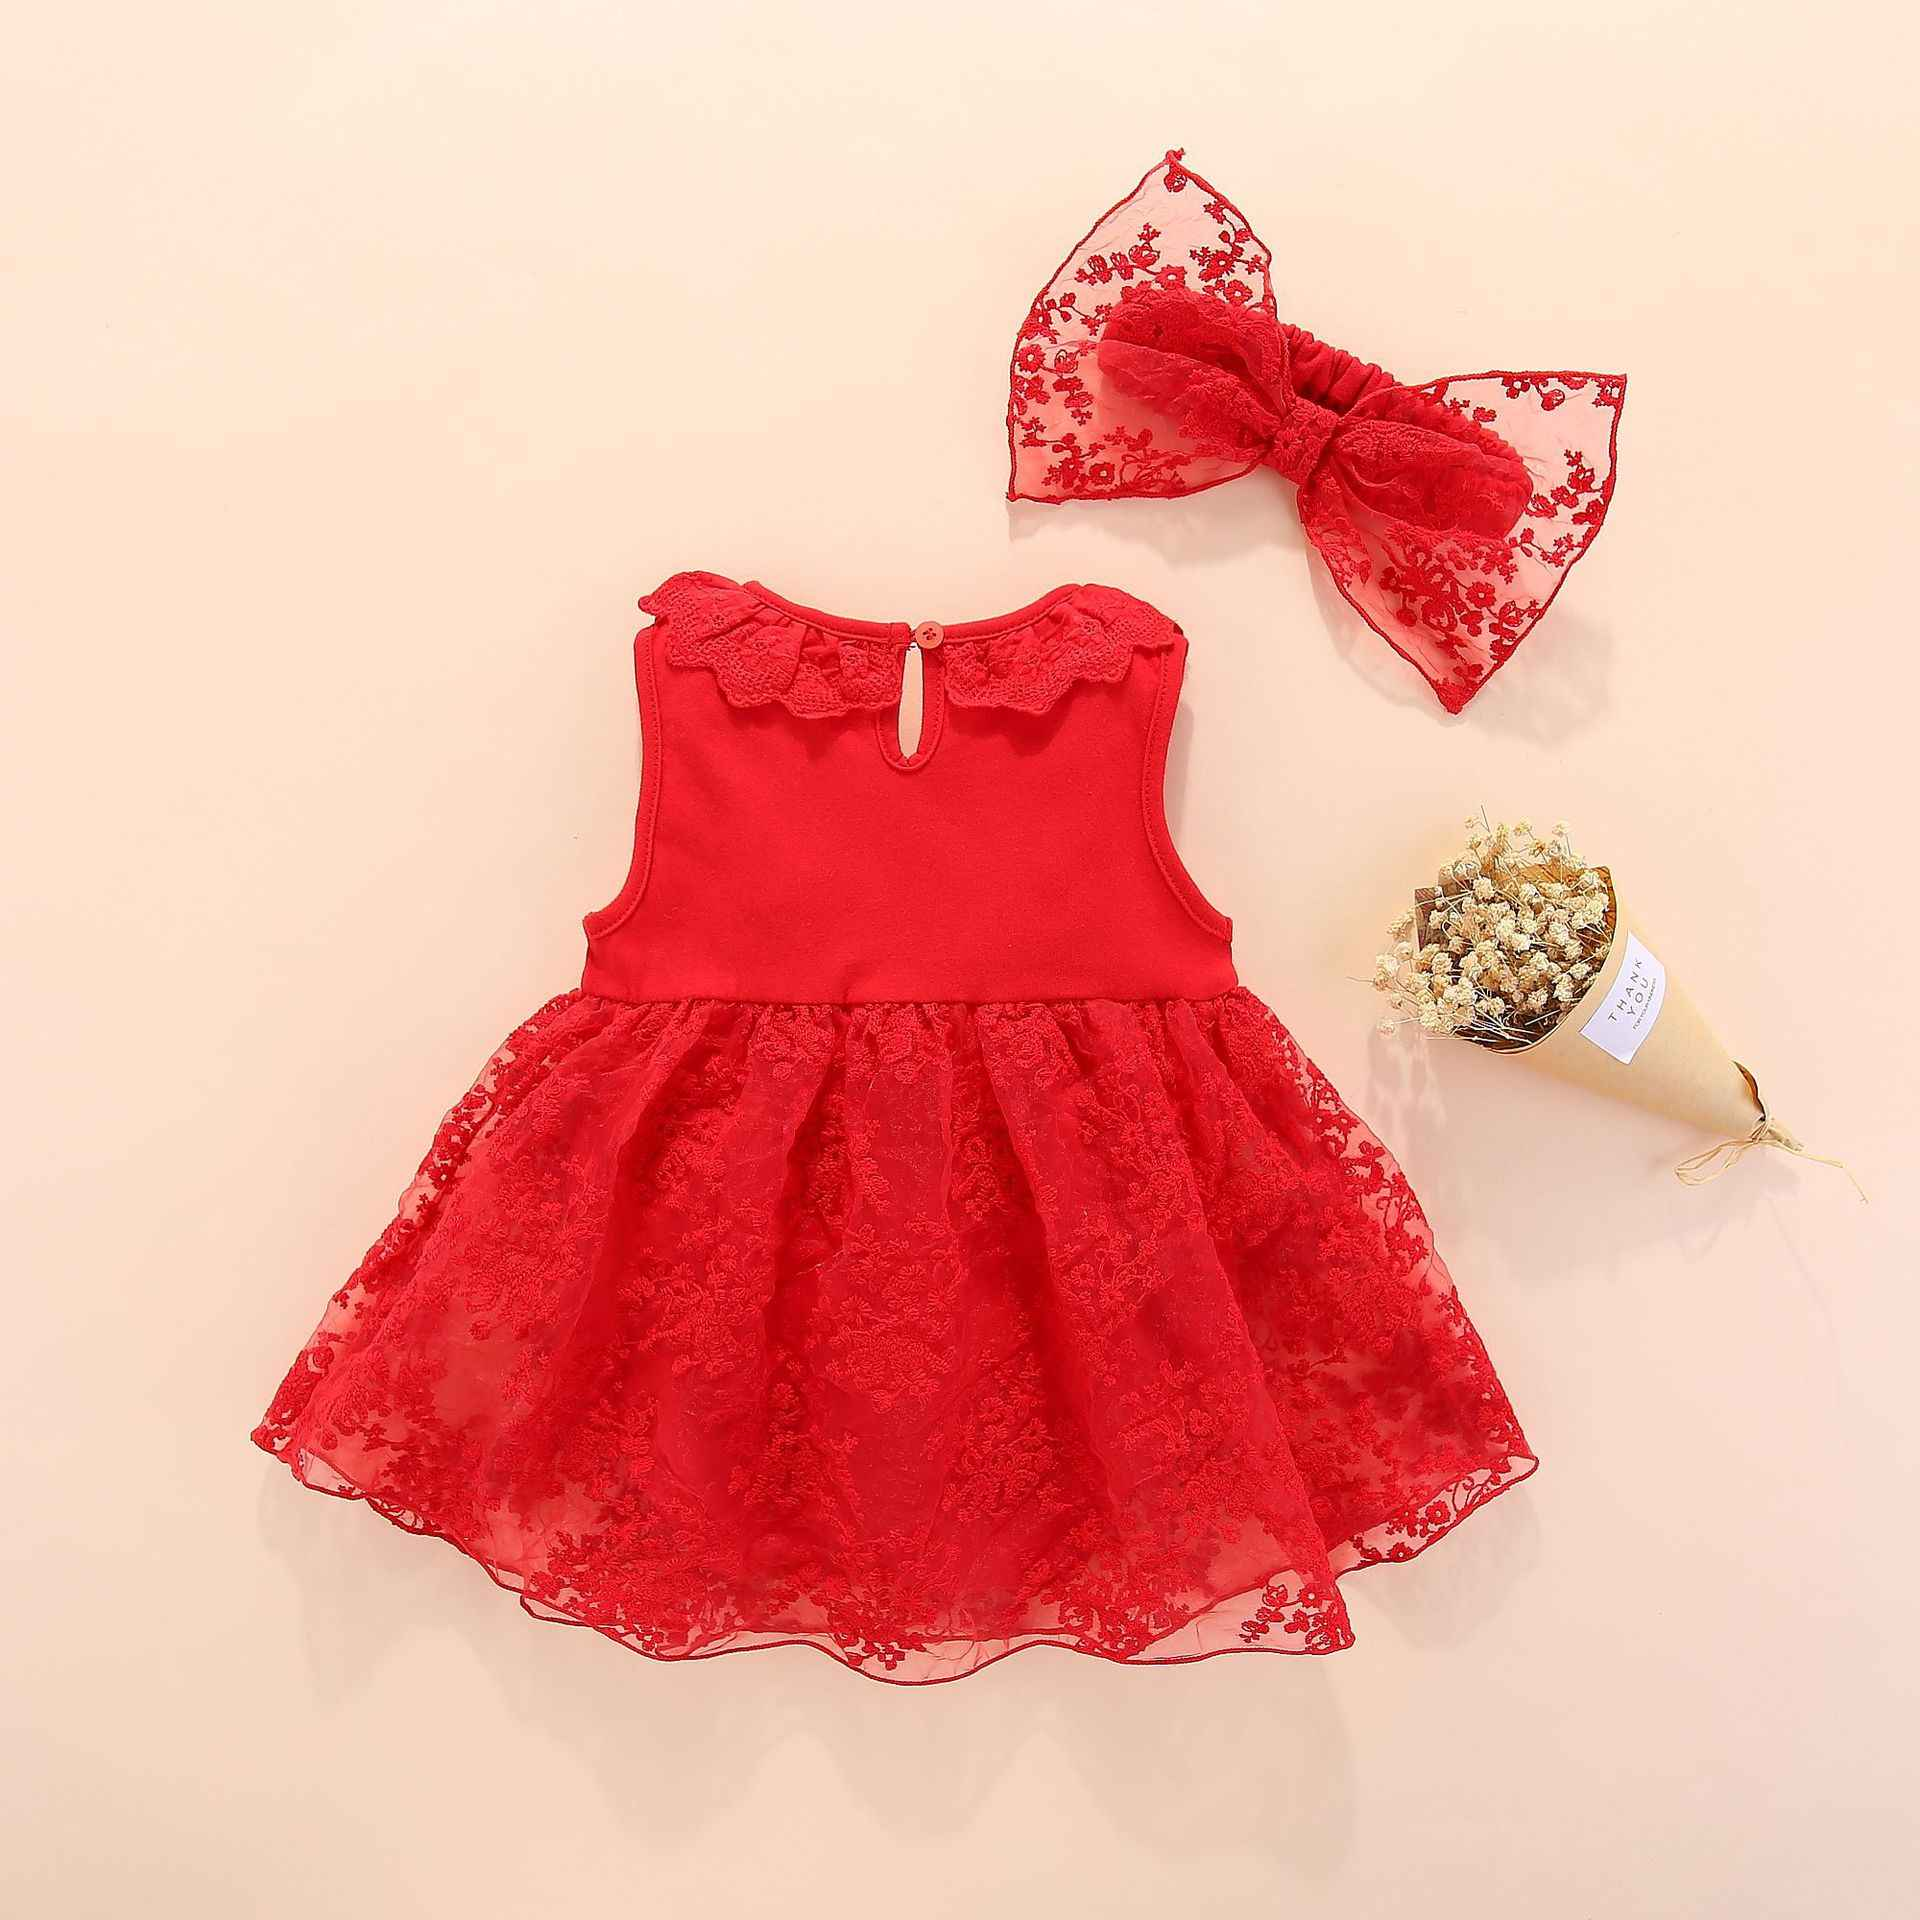 4d0b02e44fa7 Detail Feedback Questions about baby girl dress summer clothes kids ...